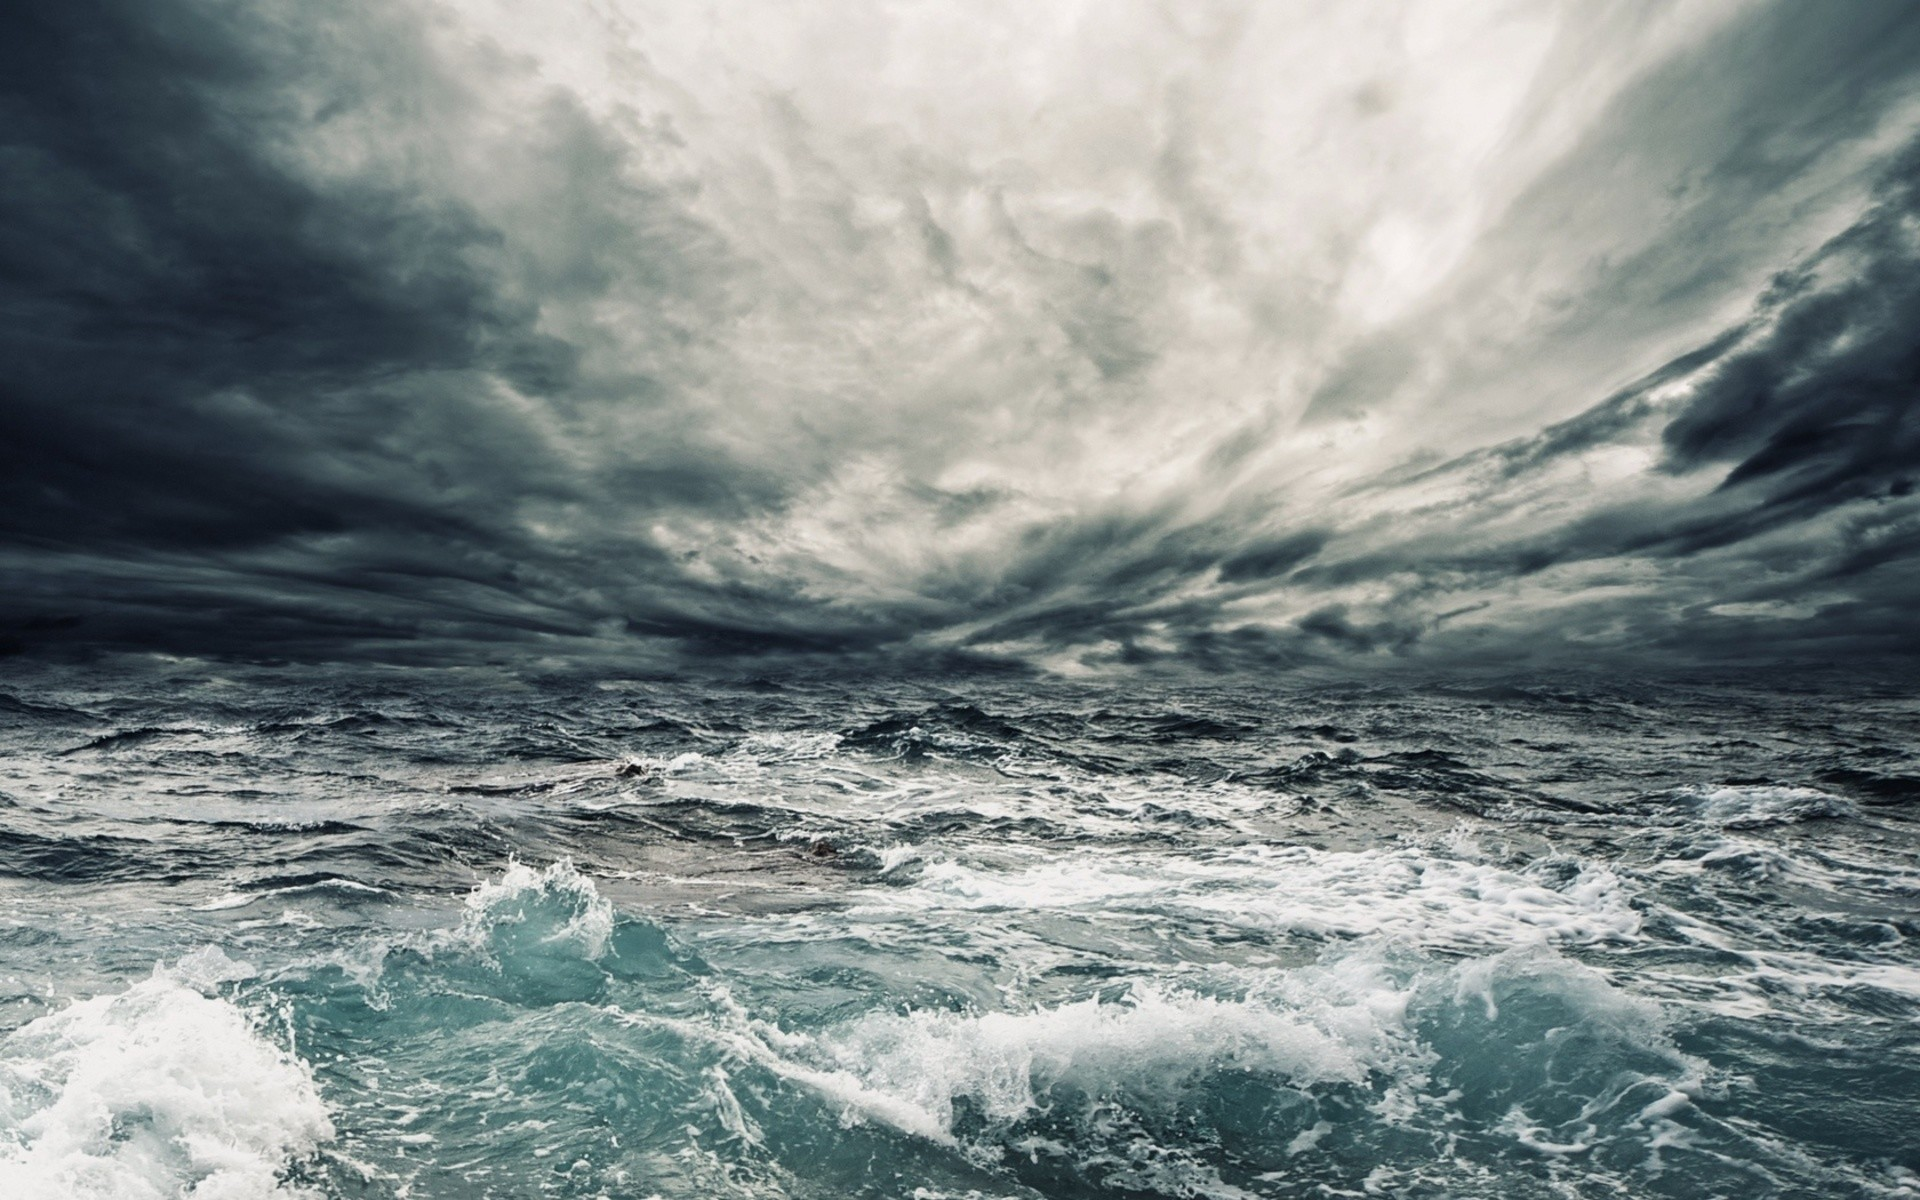 1920x1200 Stormy Ocean Wallpaper 1920x1080 Stormy, Ocean 0 HTML code.  http://www.fotosearch.com/photos-images/dark.